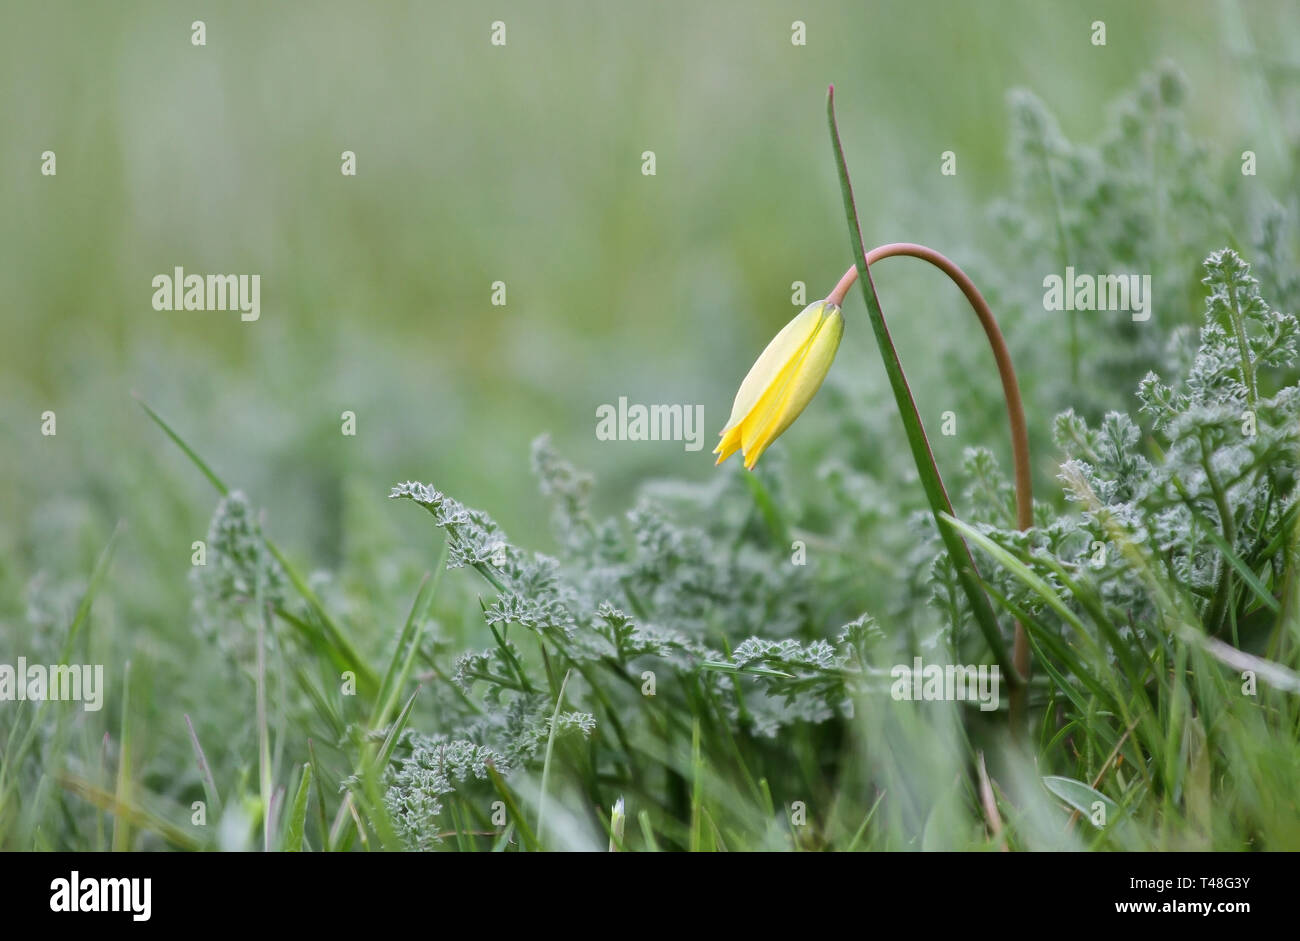 Delicate background, wild tulip in the steppe, Bieberstein tulip, yellow flower on a gentle background - Stock Image